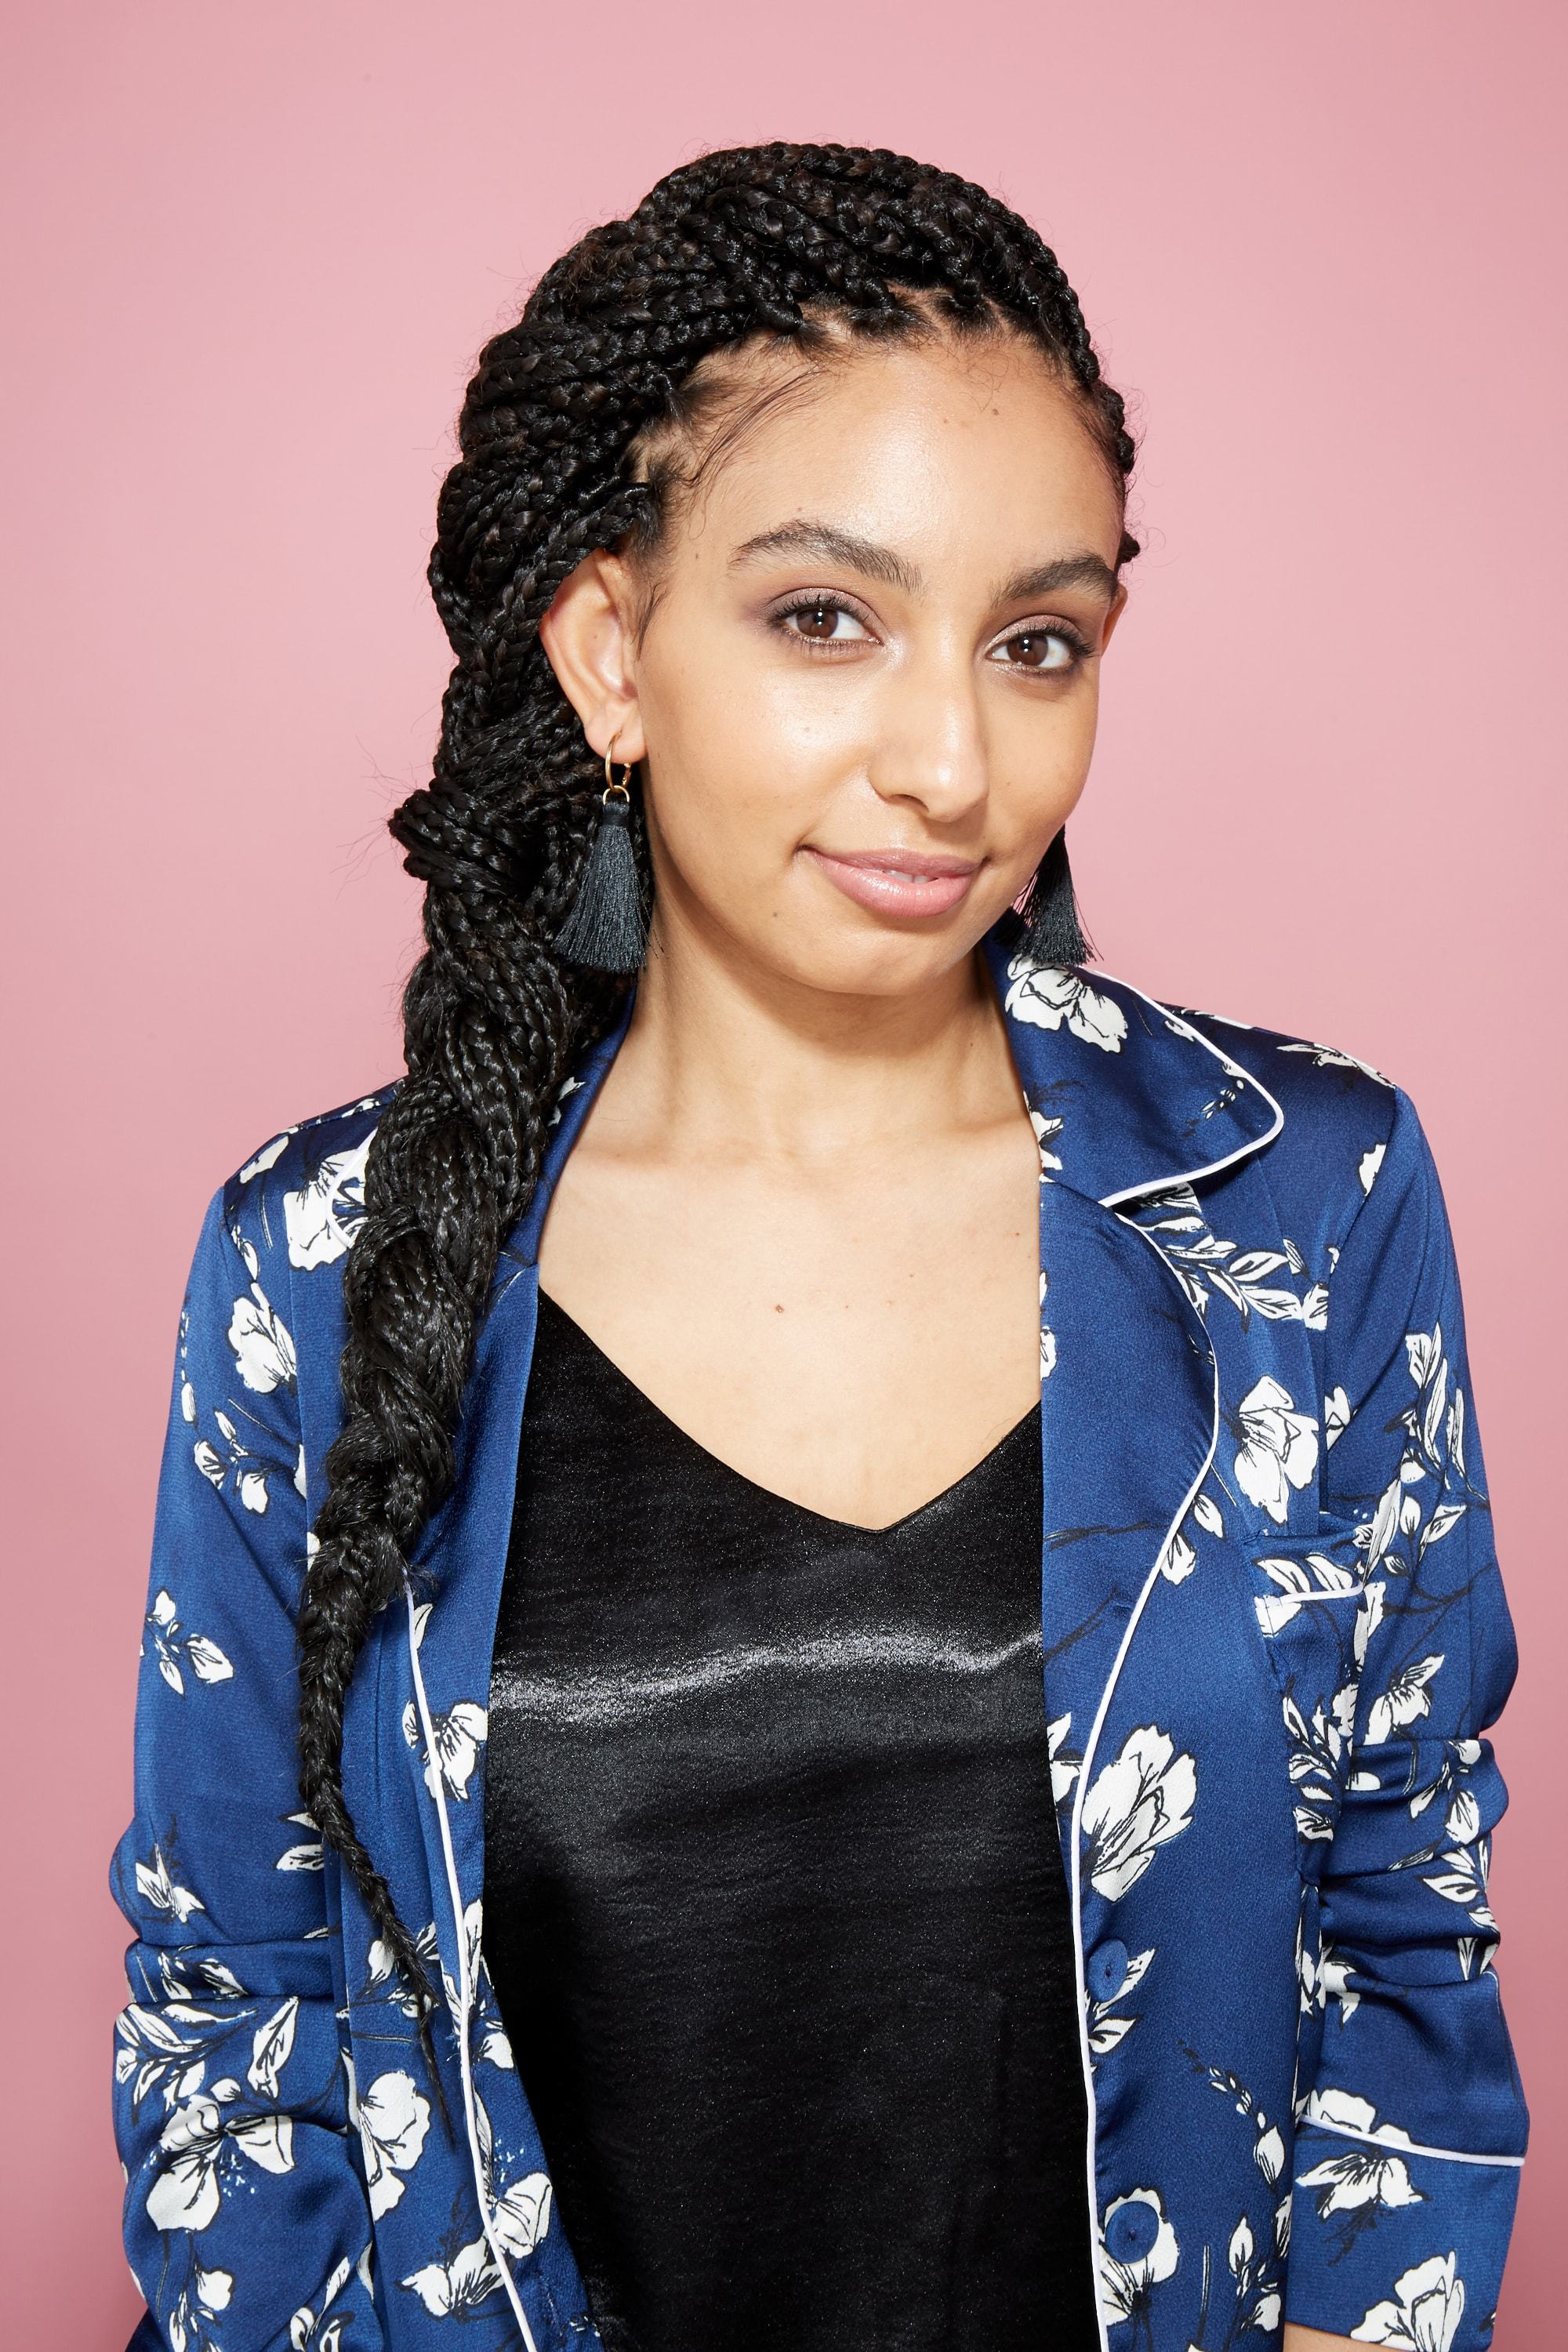 hair updos: woman with box braids styled in a side french braid in studio with pink background wearing a navy floral blazer and tassel earrings